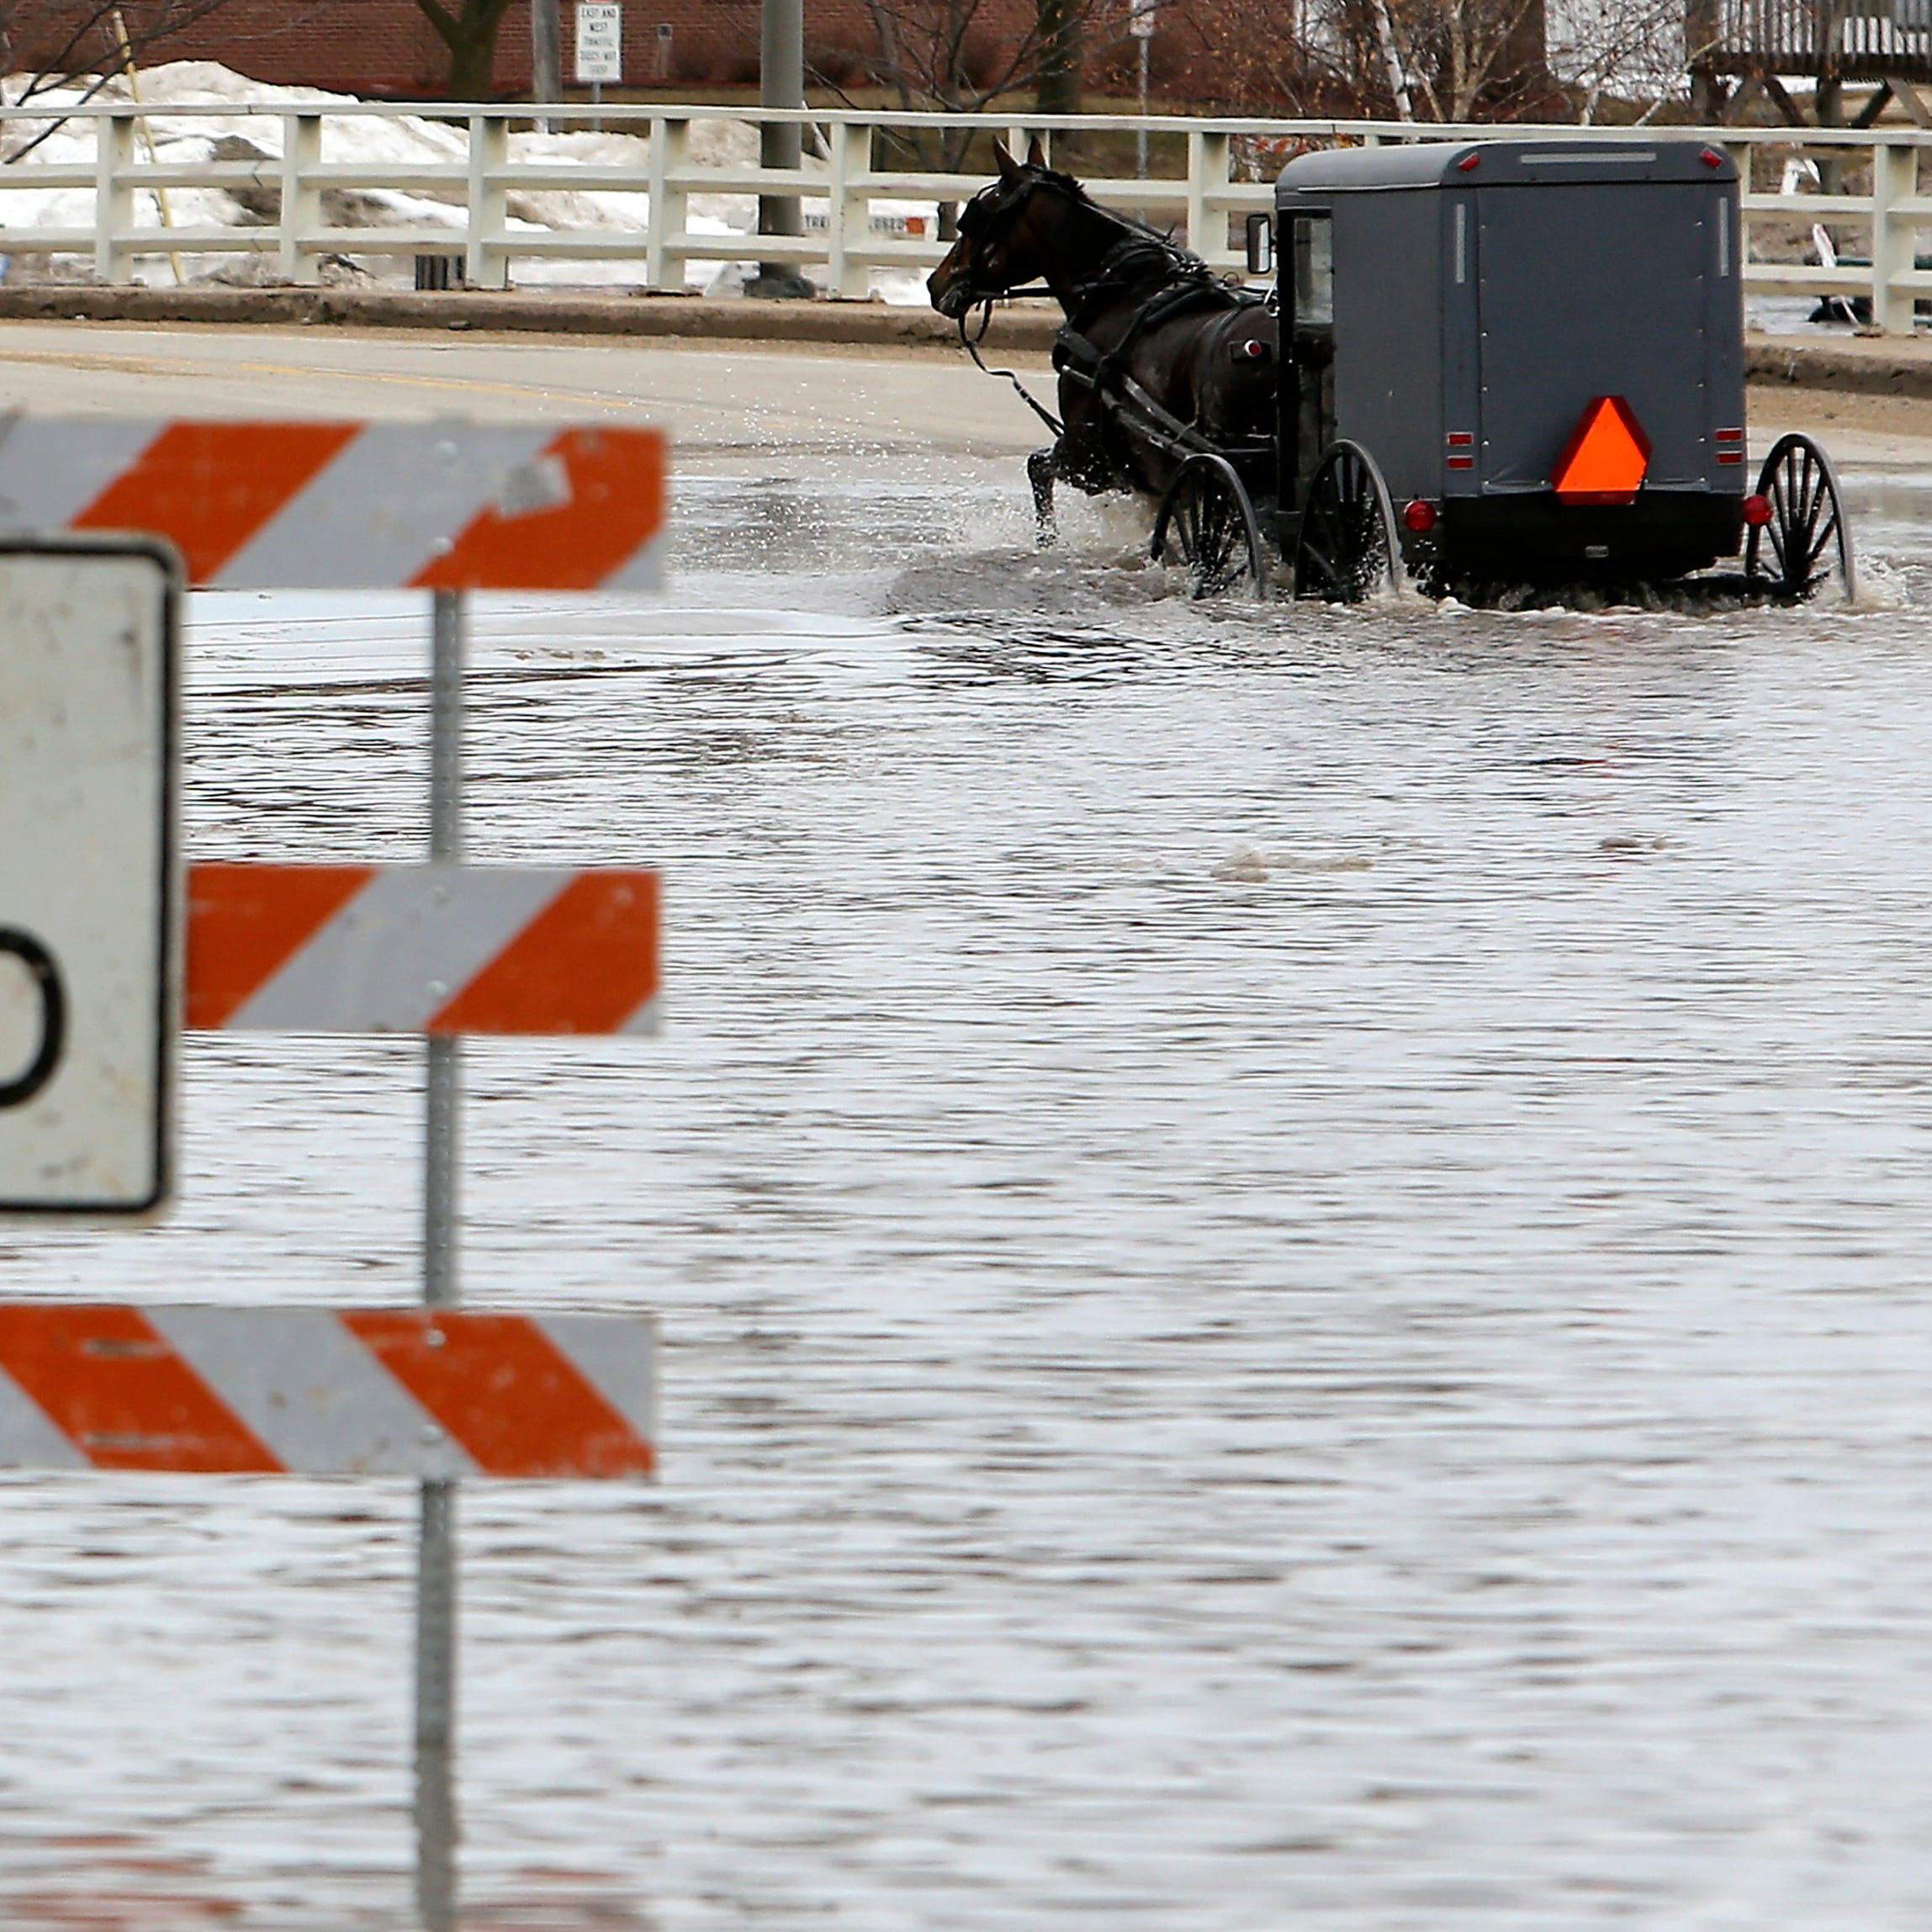 Wisconsin gets warm weather this week, and flooded rivers expected to crest soon and drop below flood stage